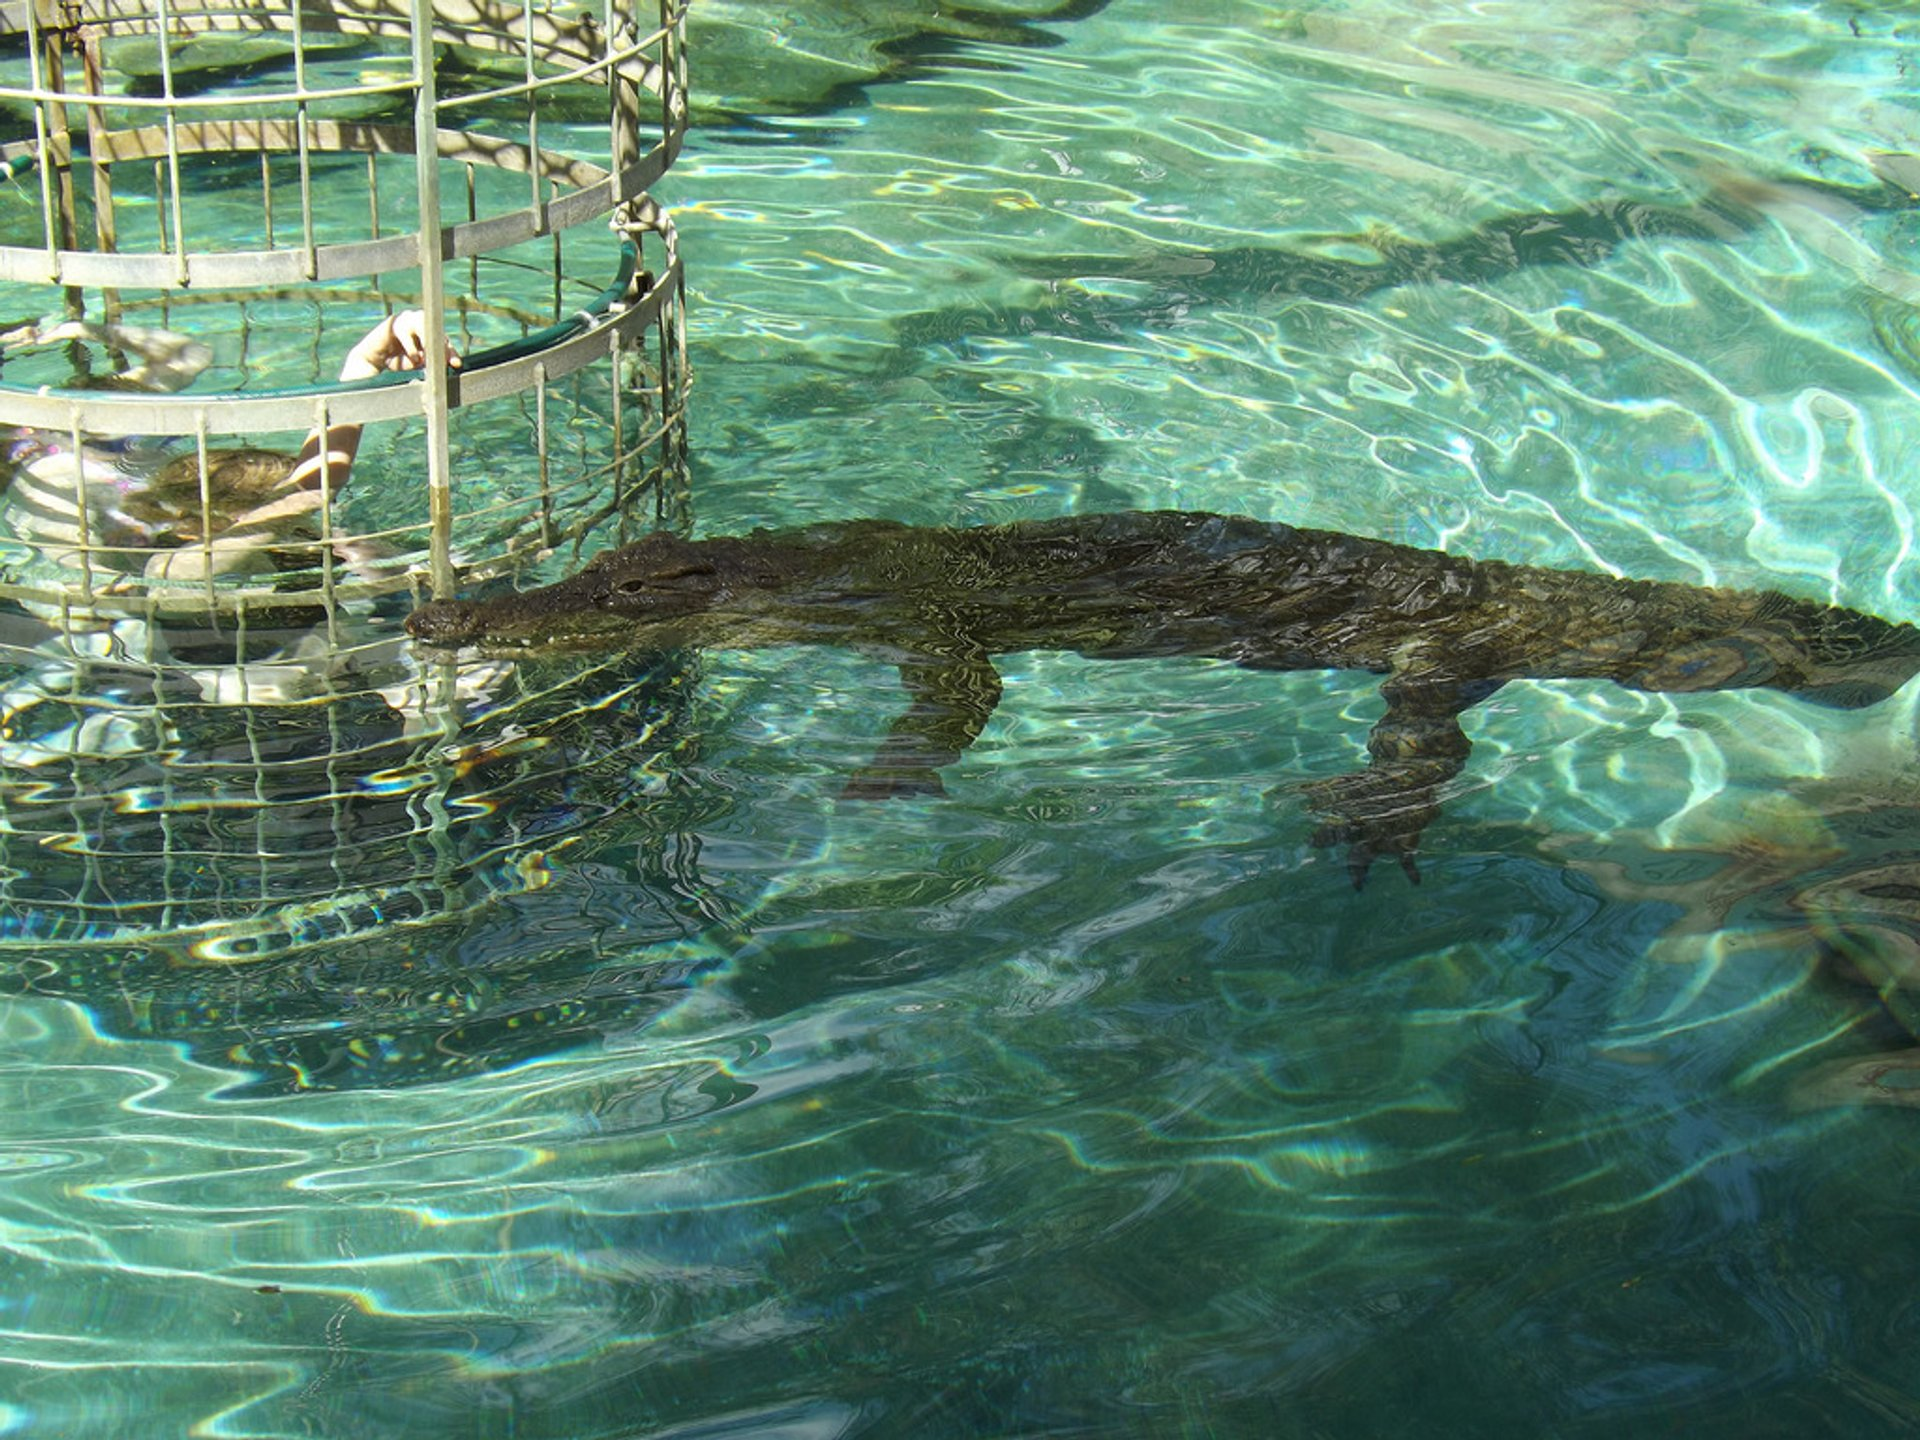 Croc Cage Diving in South Africa - Best Season 2020